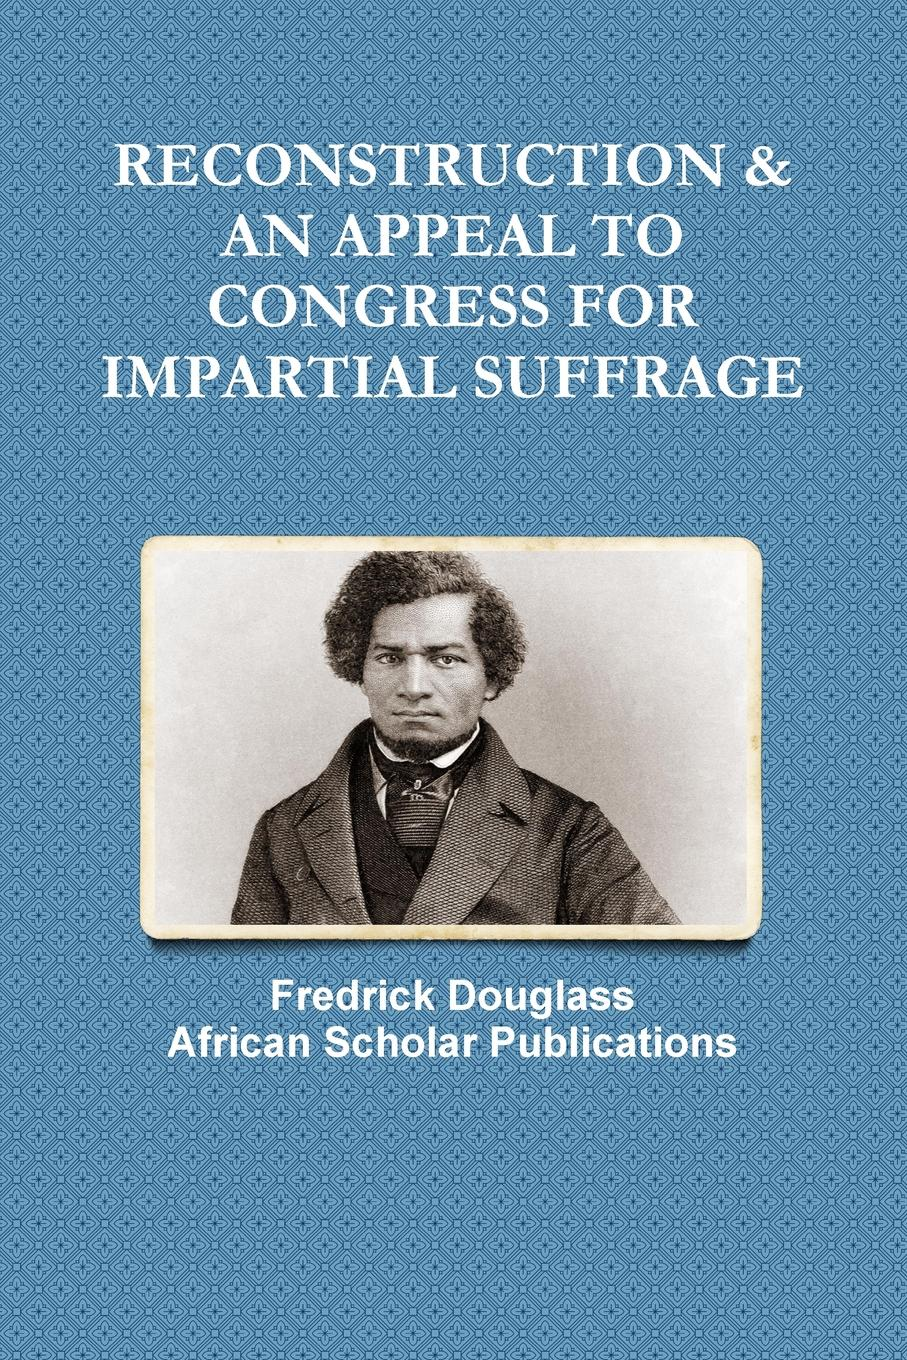 Fredrick Douglass RECONSTRUCTION . AN APPEAL TO CONGRESS FOR IMPARTIAL SUFFRAGE